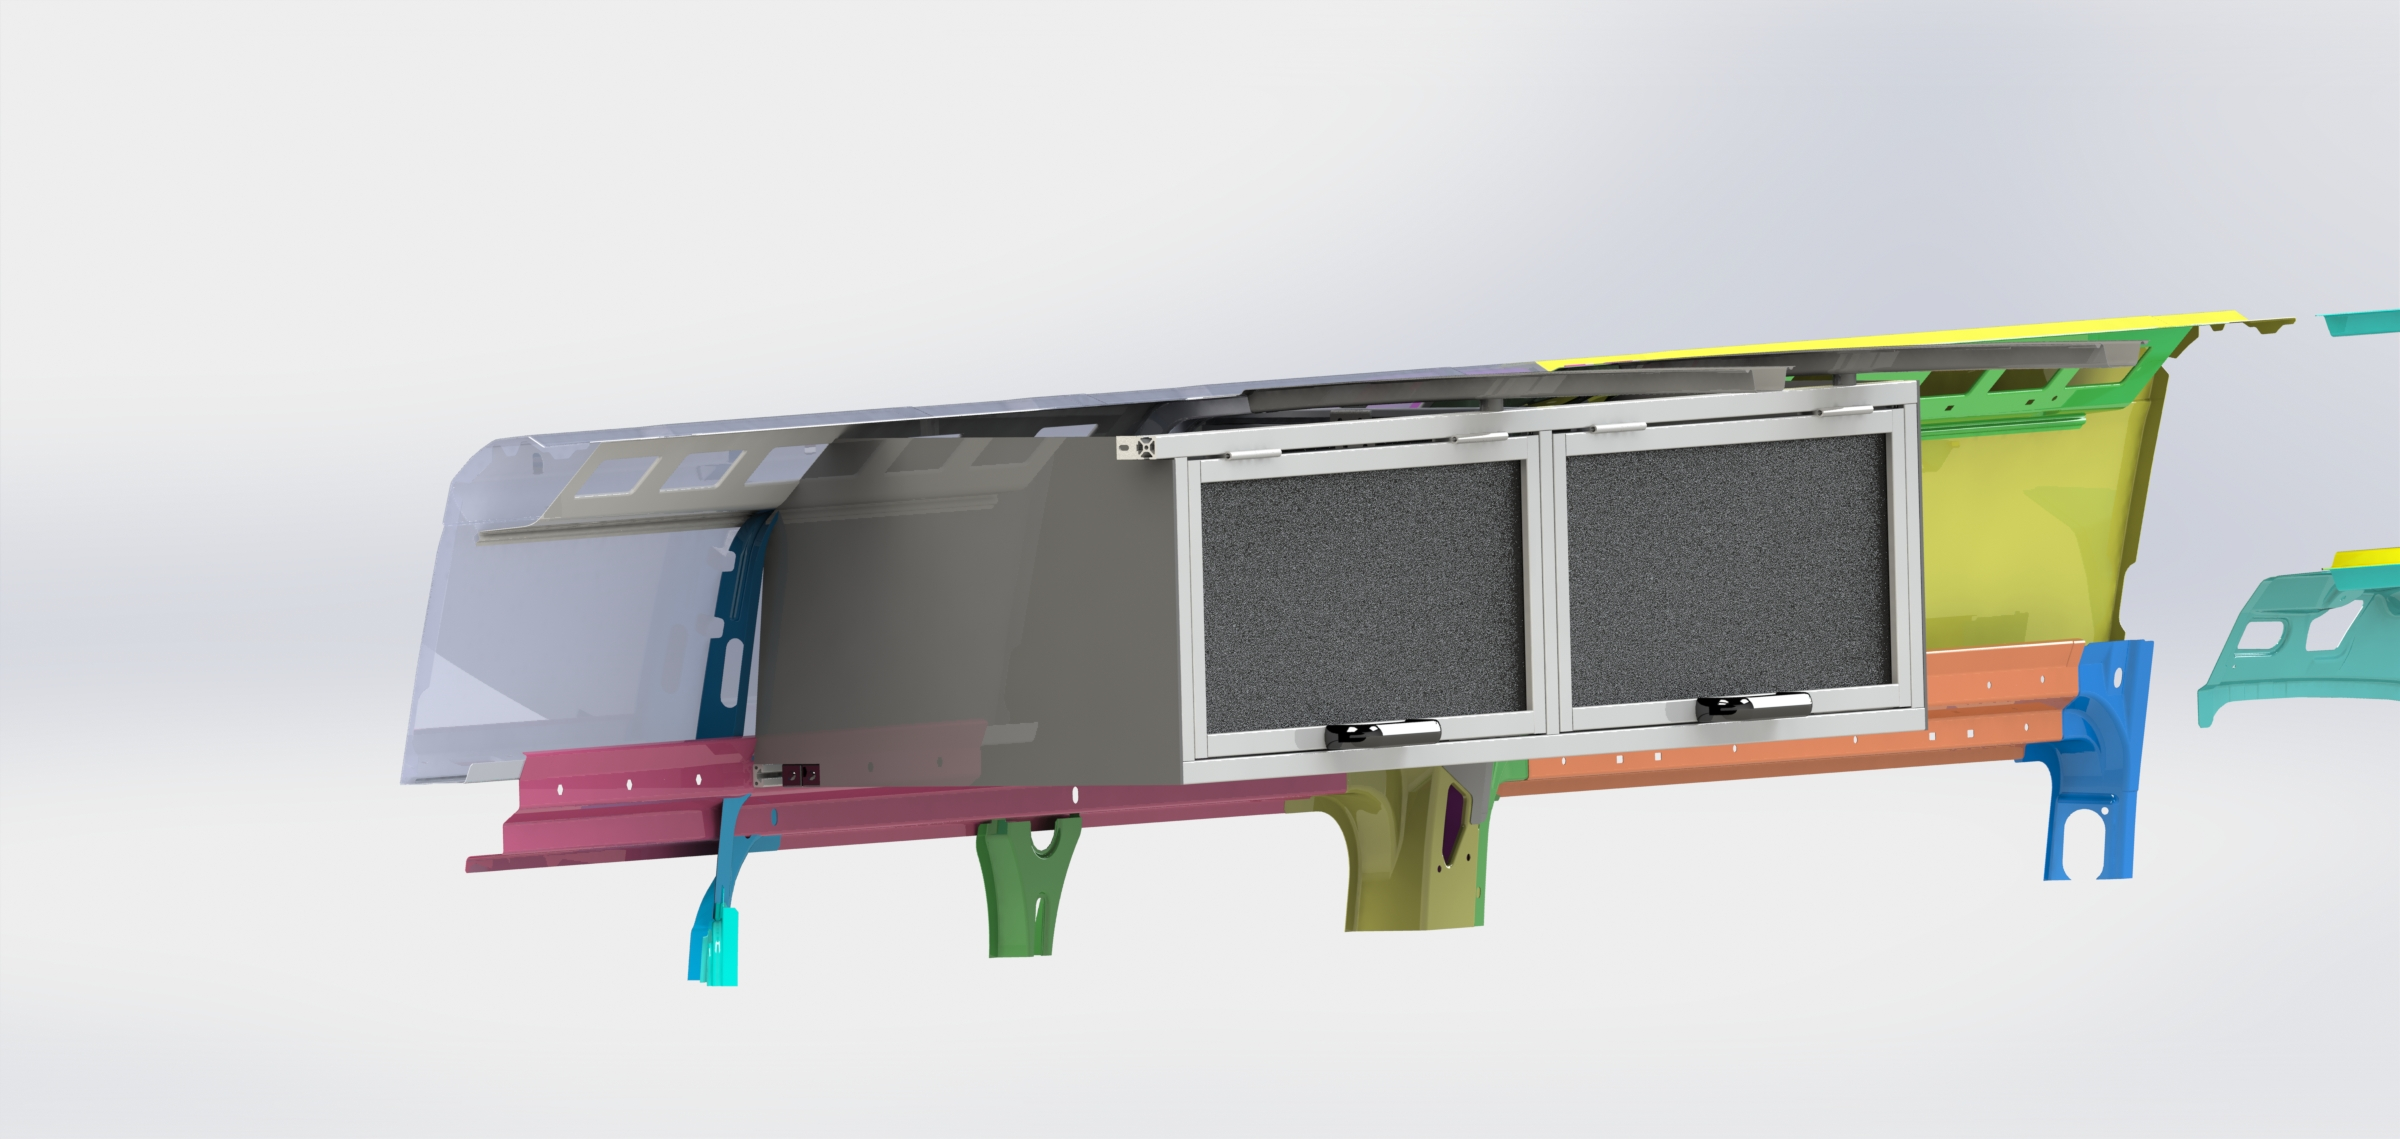 It is finally here. The first and only shippable DIY installation overhead cabinet for all years Dodge Promaster high roof vans. Built from aerospace aluminum and available in many different color and material options such as oil and gas resistant plastic and all natural hard wood paneling. This system can be installed in less than hour and is designed for business and campervan customers both. Can be installed on both sides of the cargo area and is over 60 in long. Installs with or with out panels in place. Matched exactly to OEM specs and almost no modifications to the van! You will not find a lighter,safer, more usable engineered option out there. Comes with a 5 year no hassle warranty and free returns.